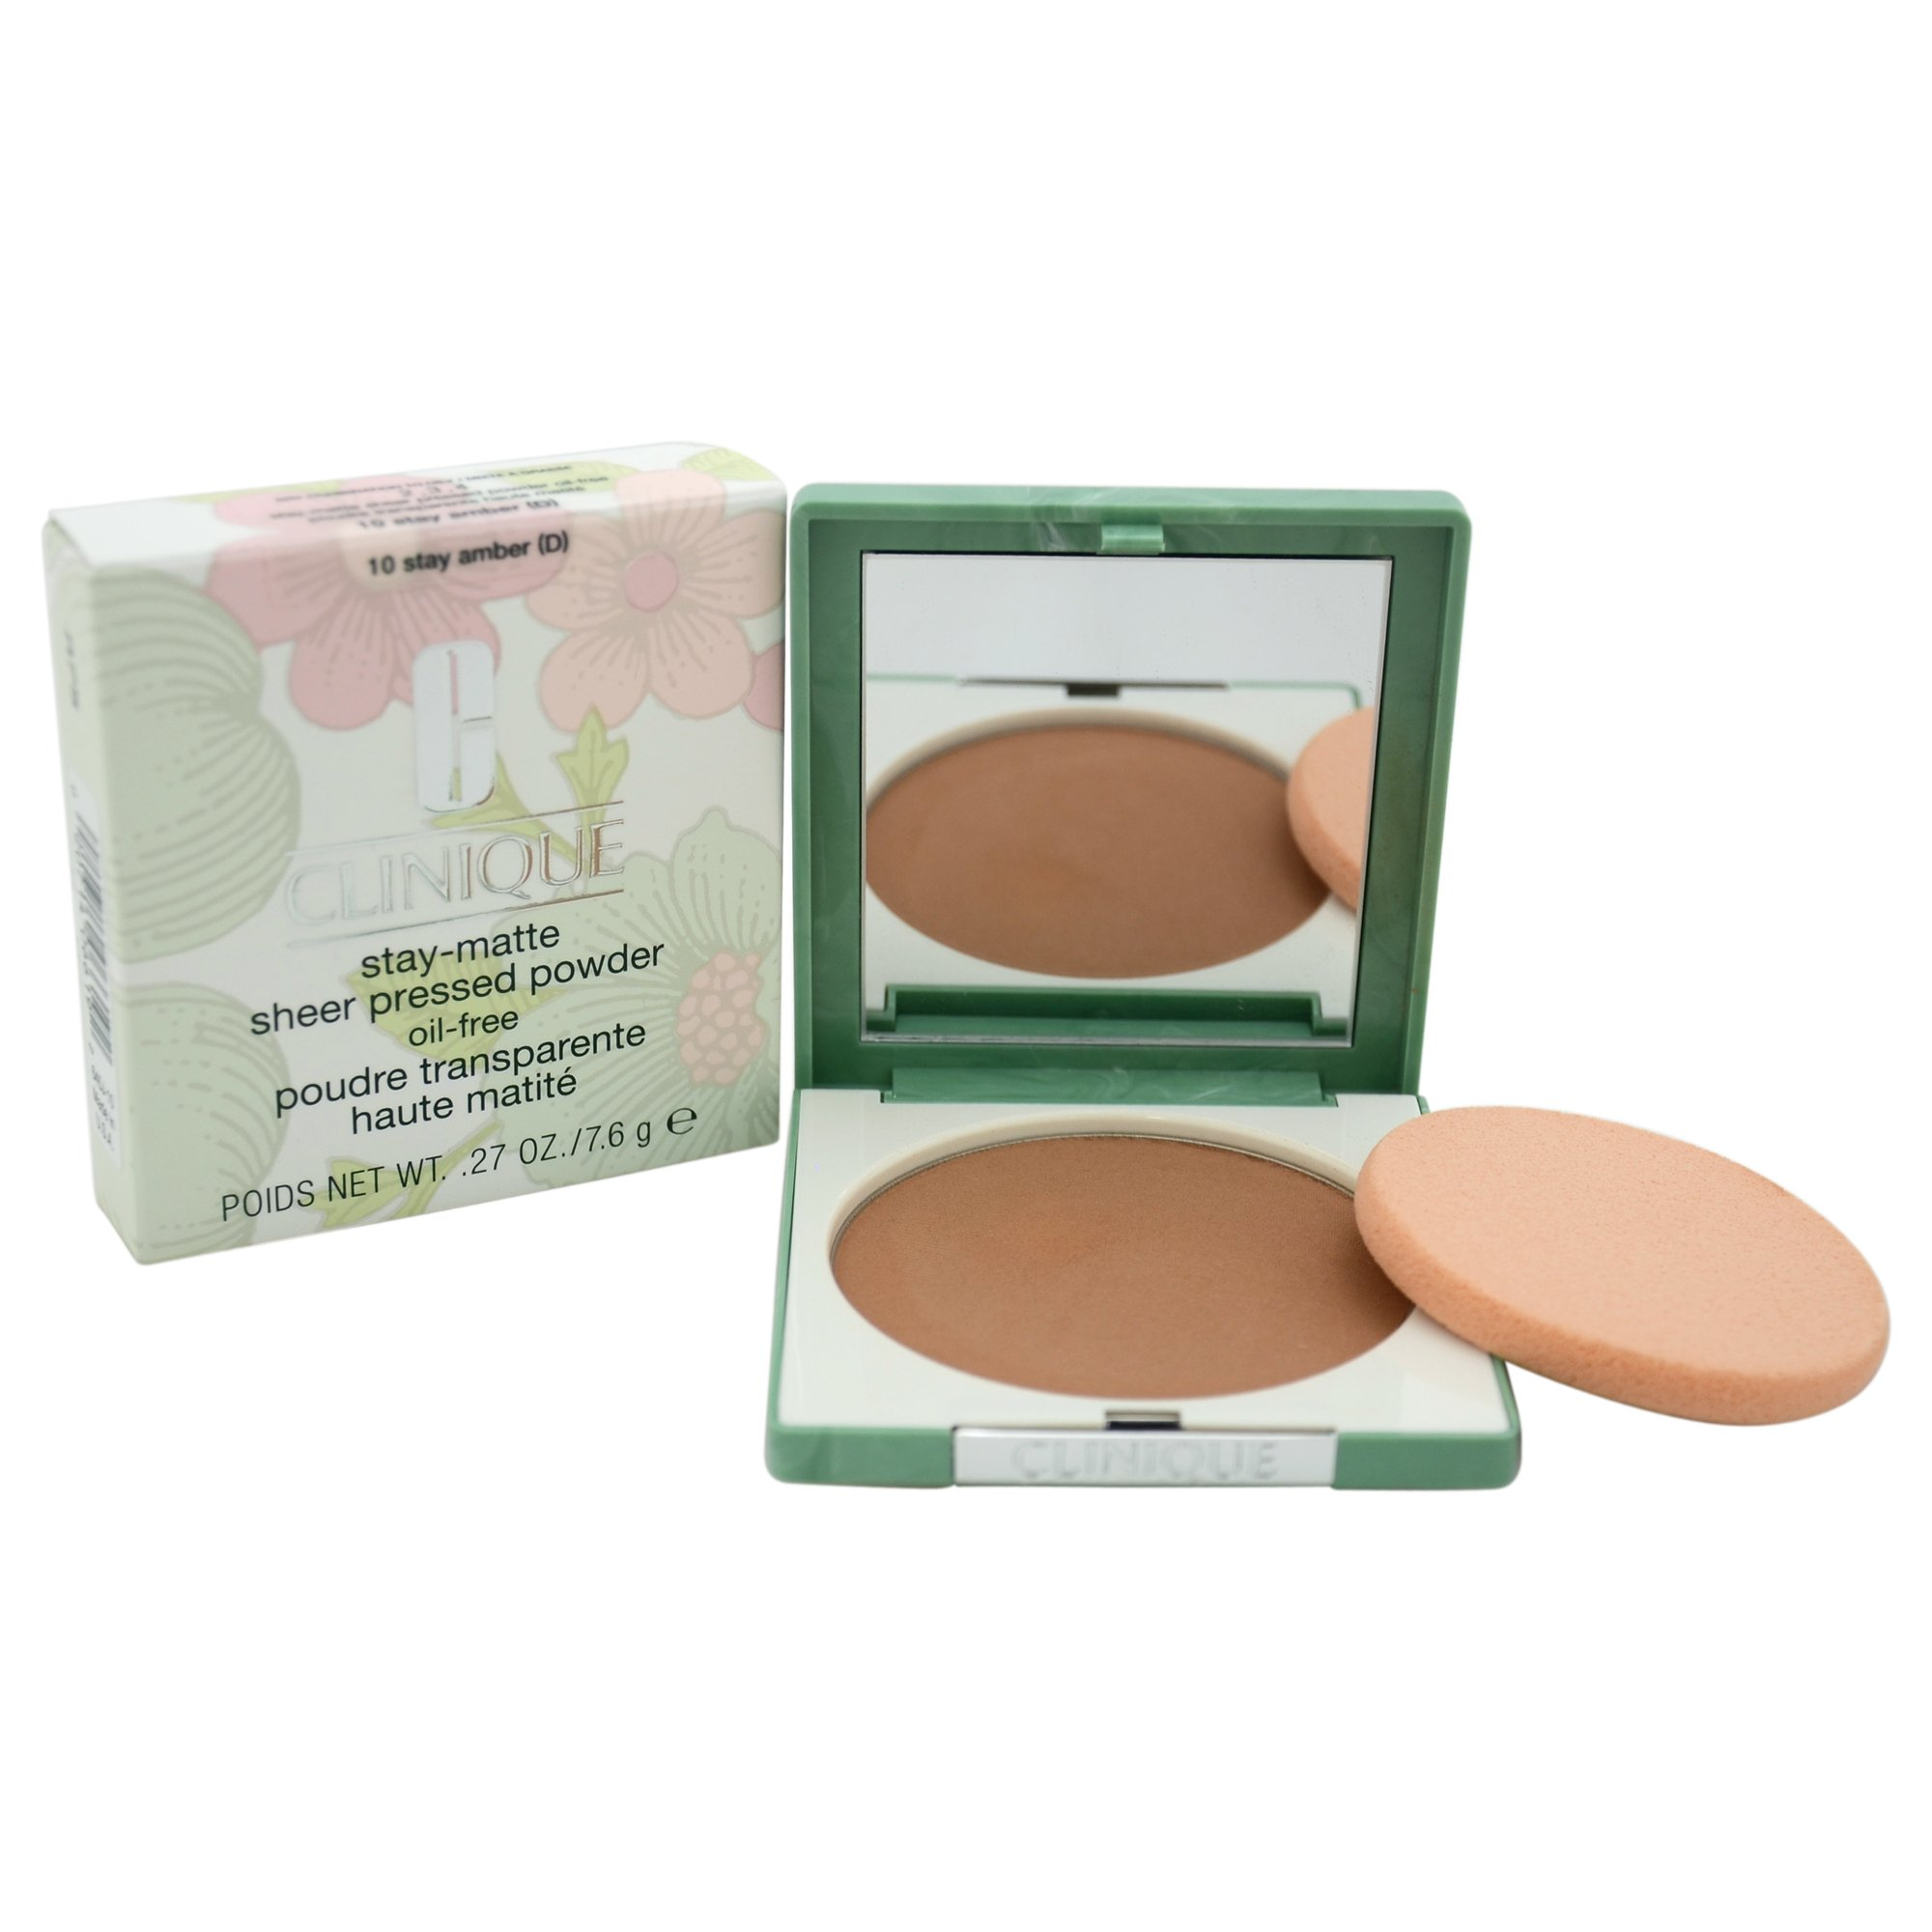 Clinique Women's Stay-Matte Sheer Pressed Powder, 10 Stay Amber, Dry Combination To Oily, 0.27 Ounce